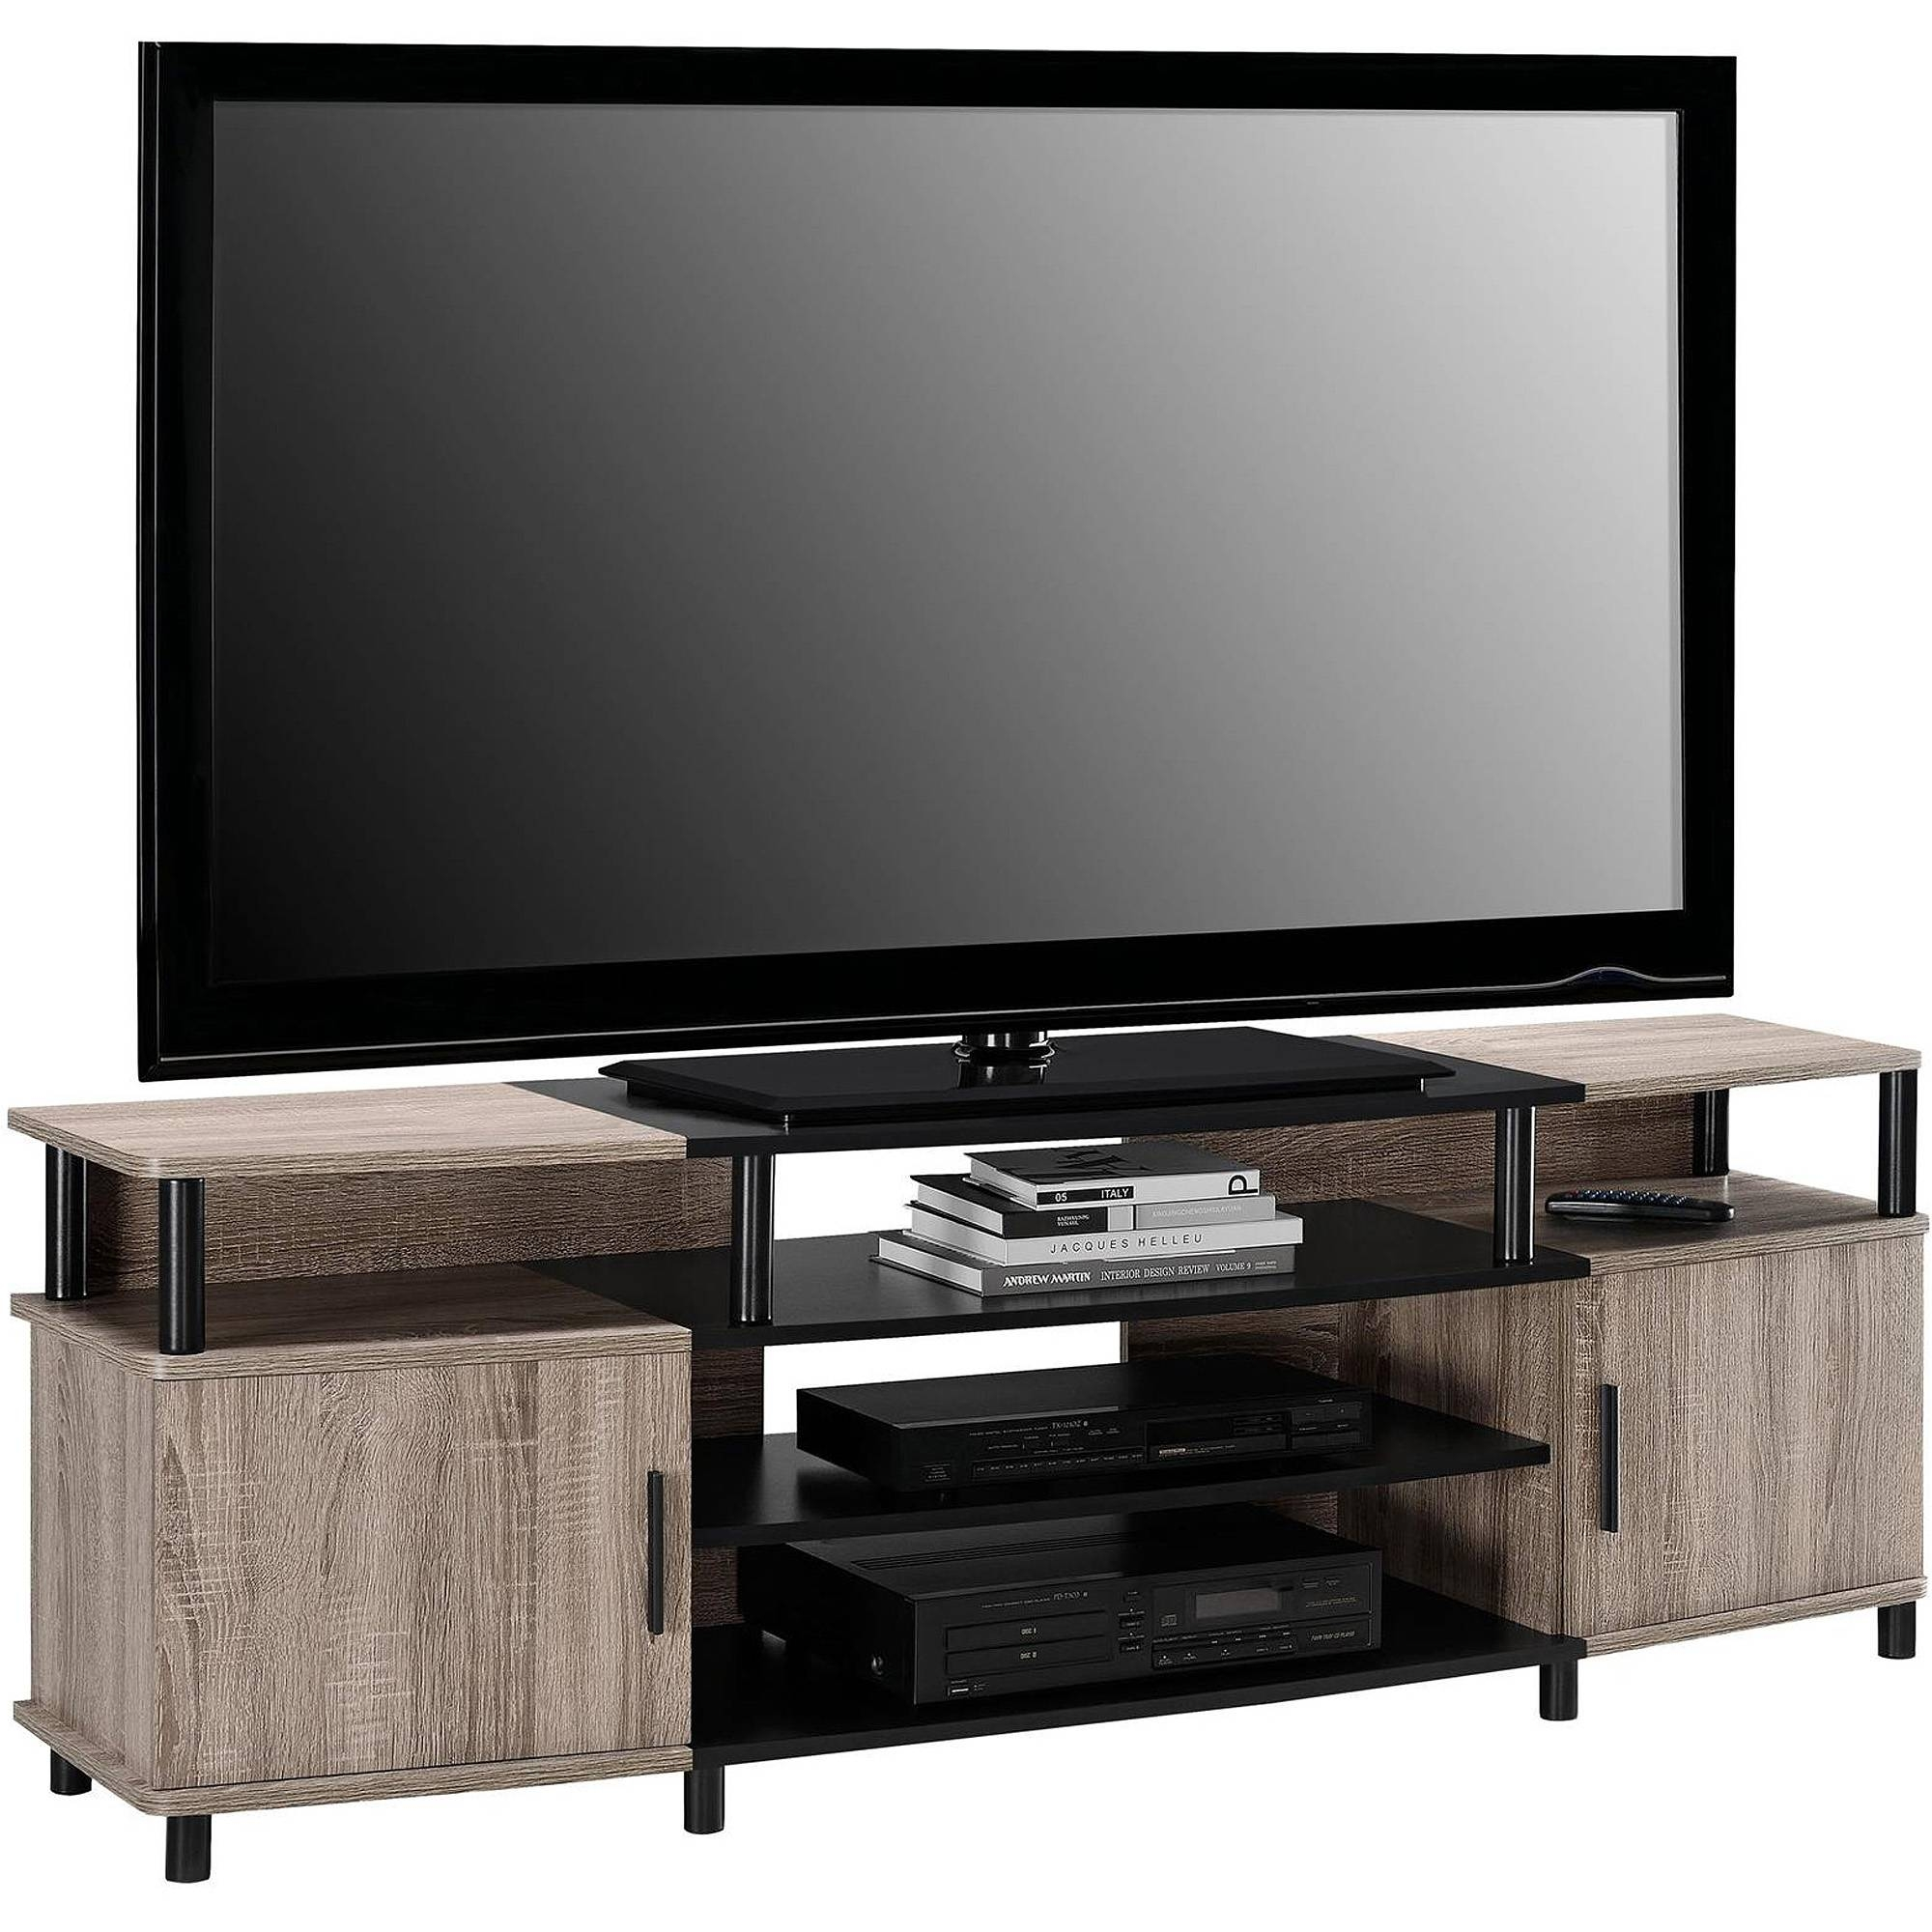 "Carson Tv Stand For Tvs Up To 70"" Wide, Cherry - Walmart pertaining to Tv Stands for 70 Inch Tvs (Image 8 of 15)"